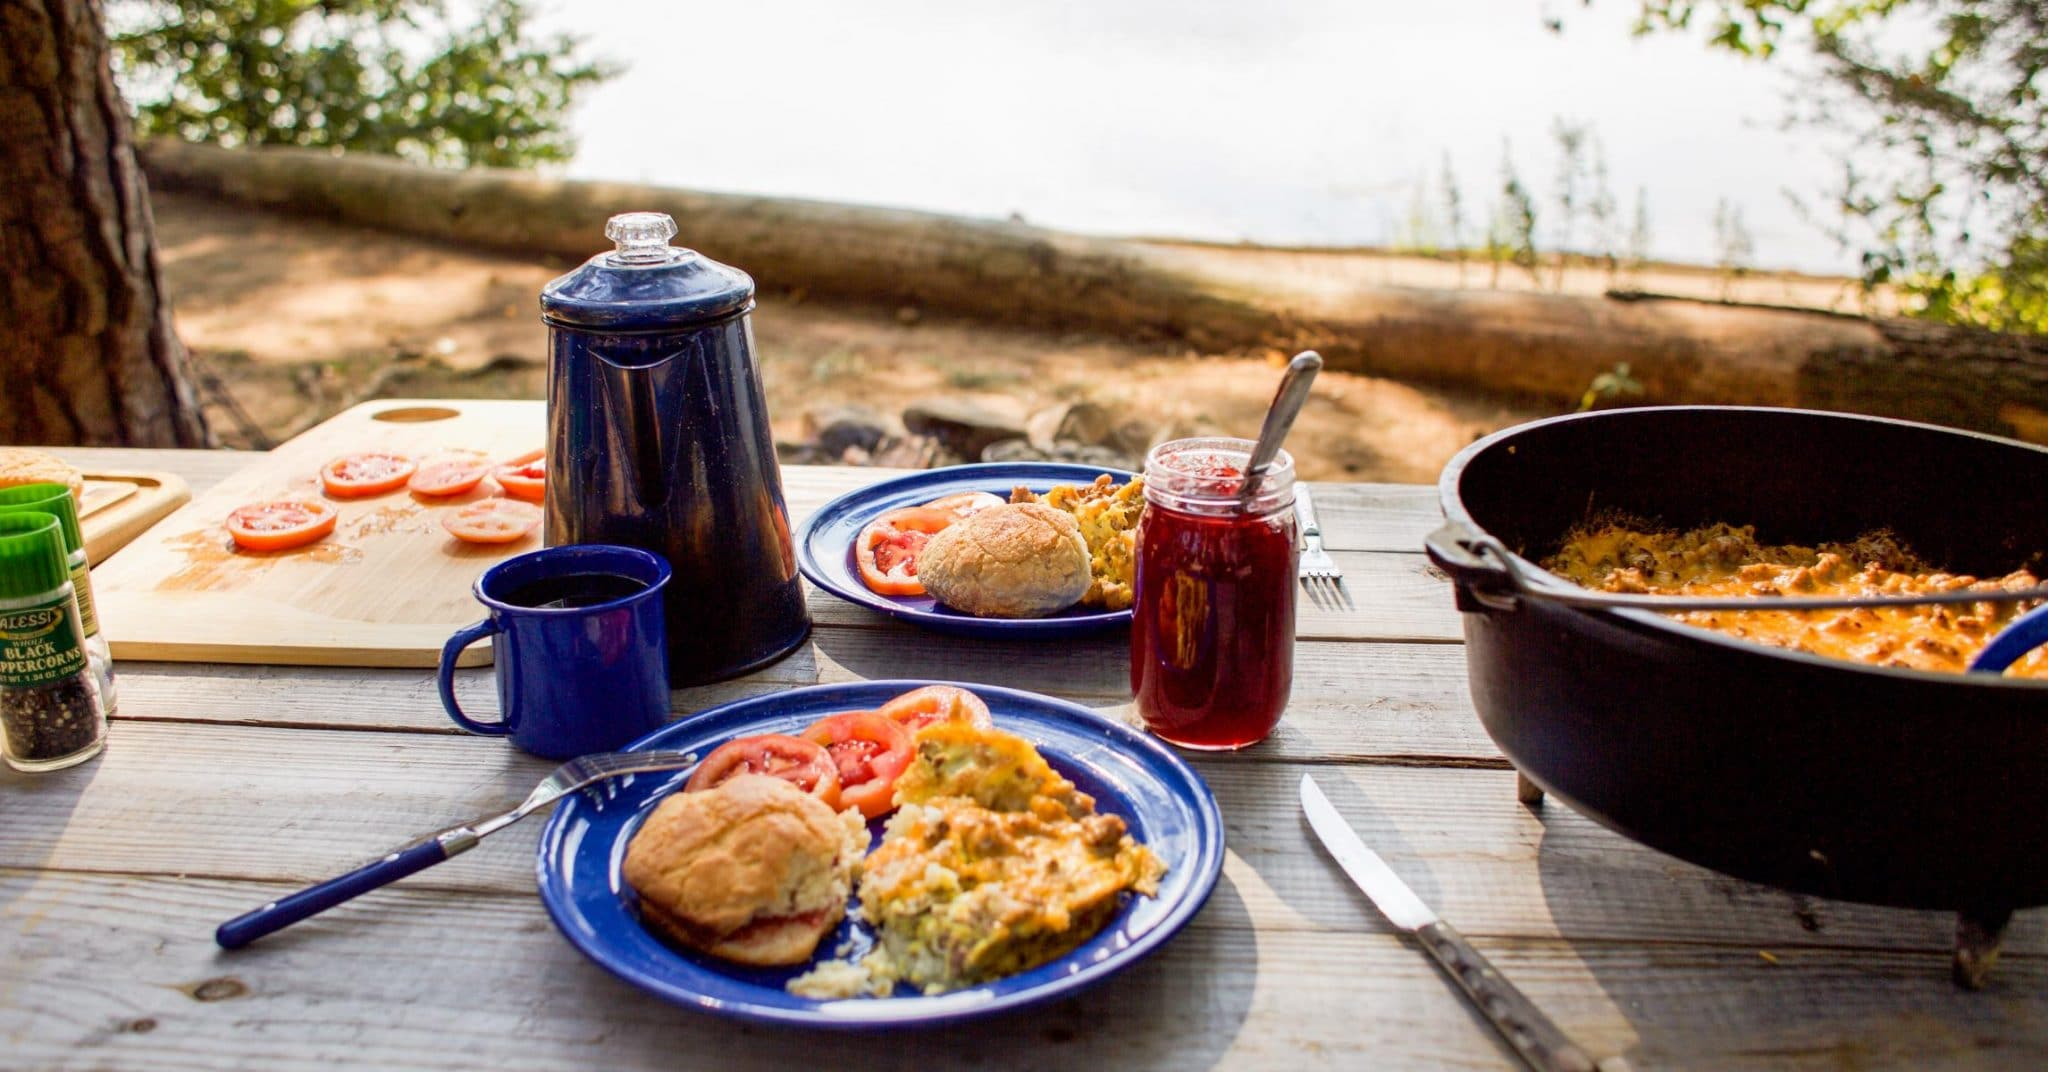 A camp scene with a pot of coffee, blue plate with egg breakfast, and Dutch oven in frame